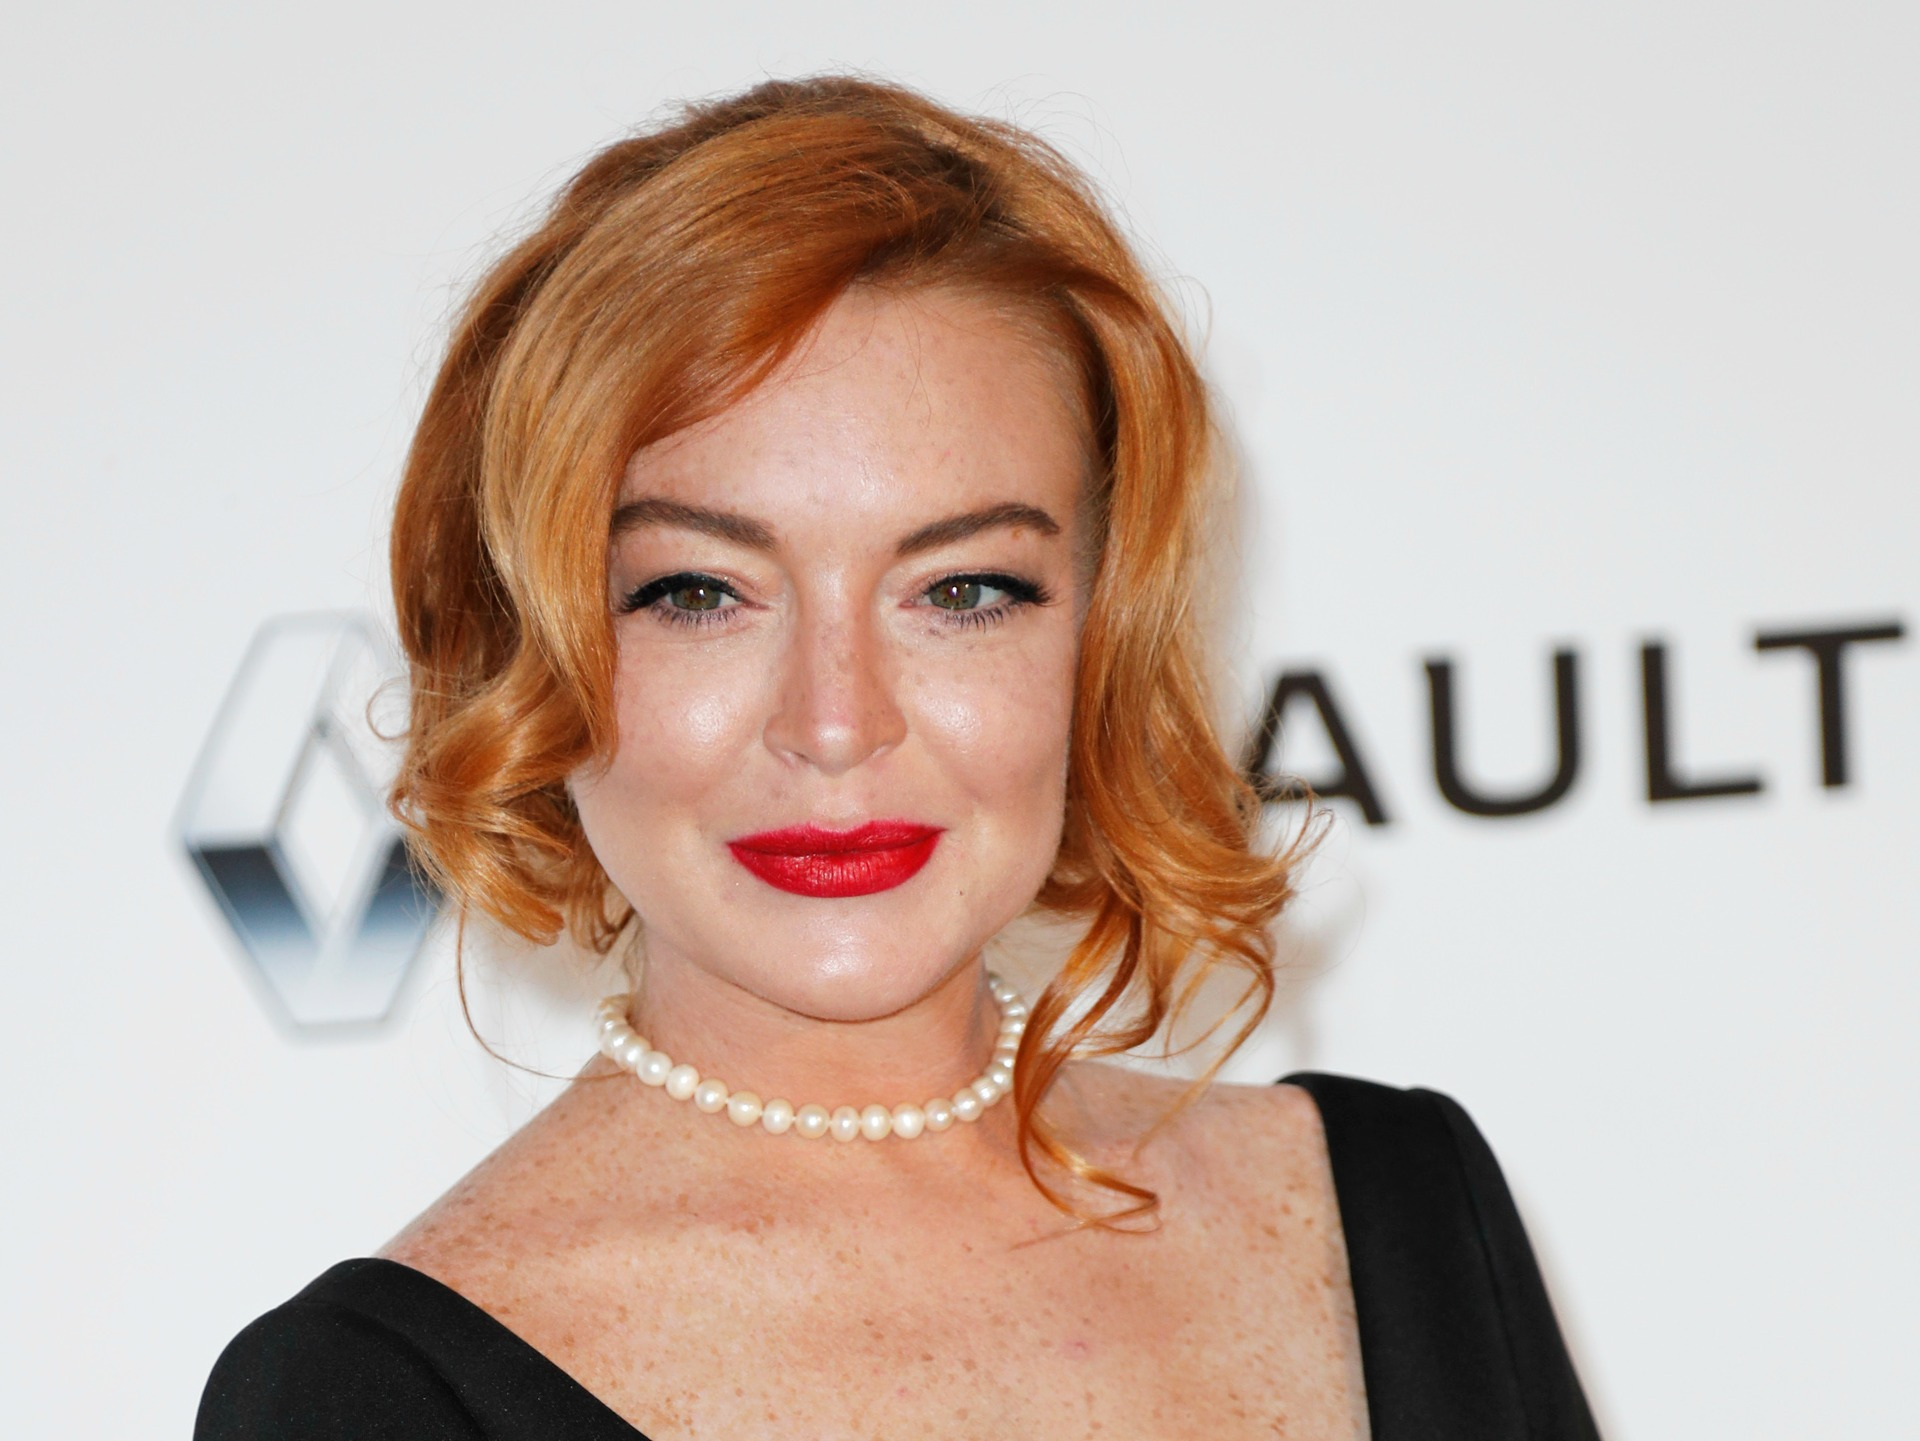 Lindsay Lohan Defends Donald Trump: 'Stop Bullying Him'